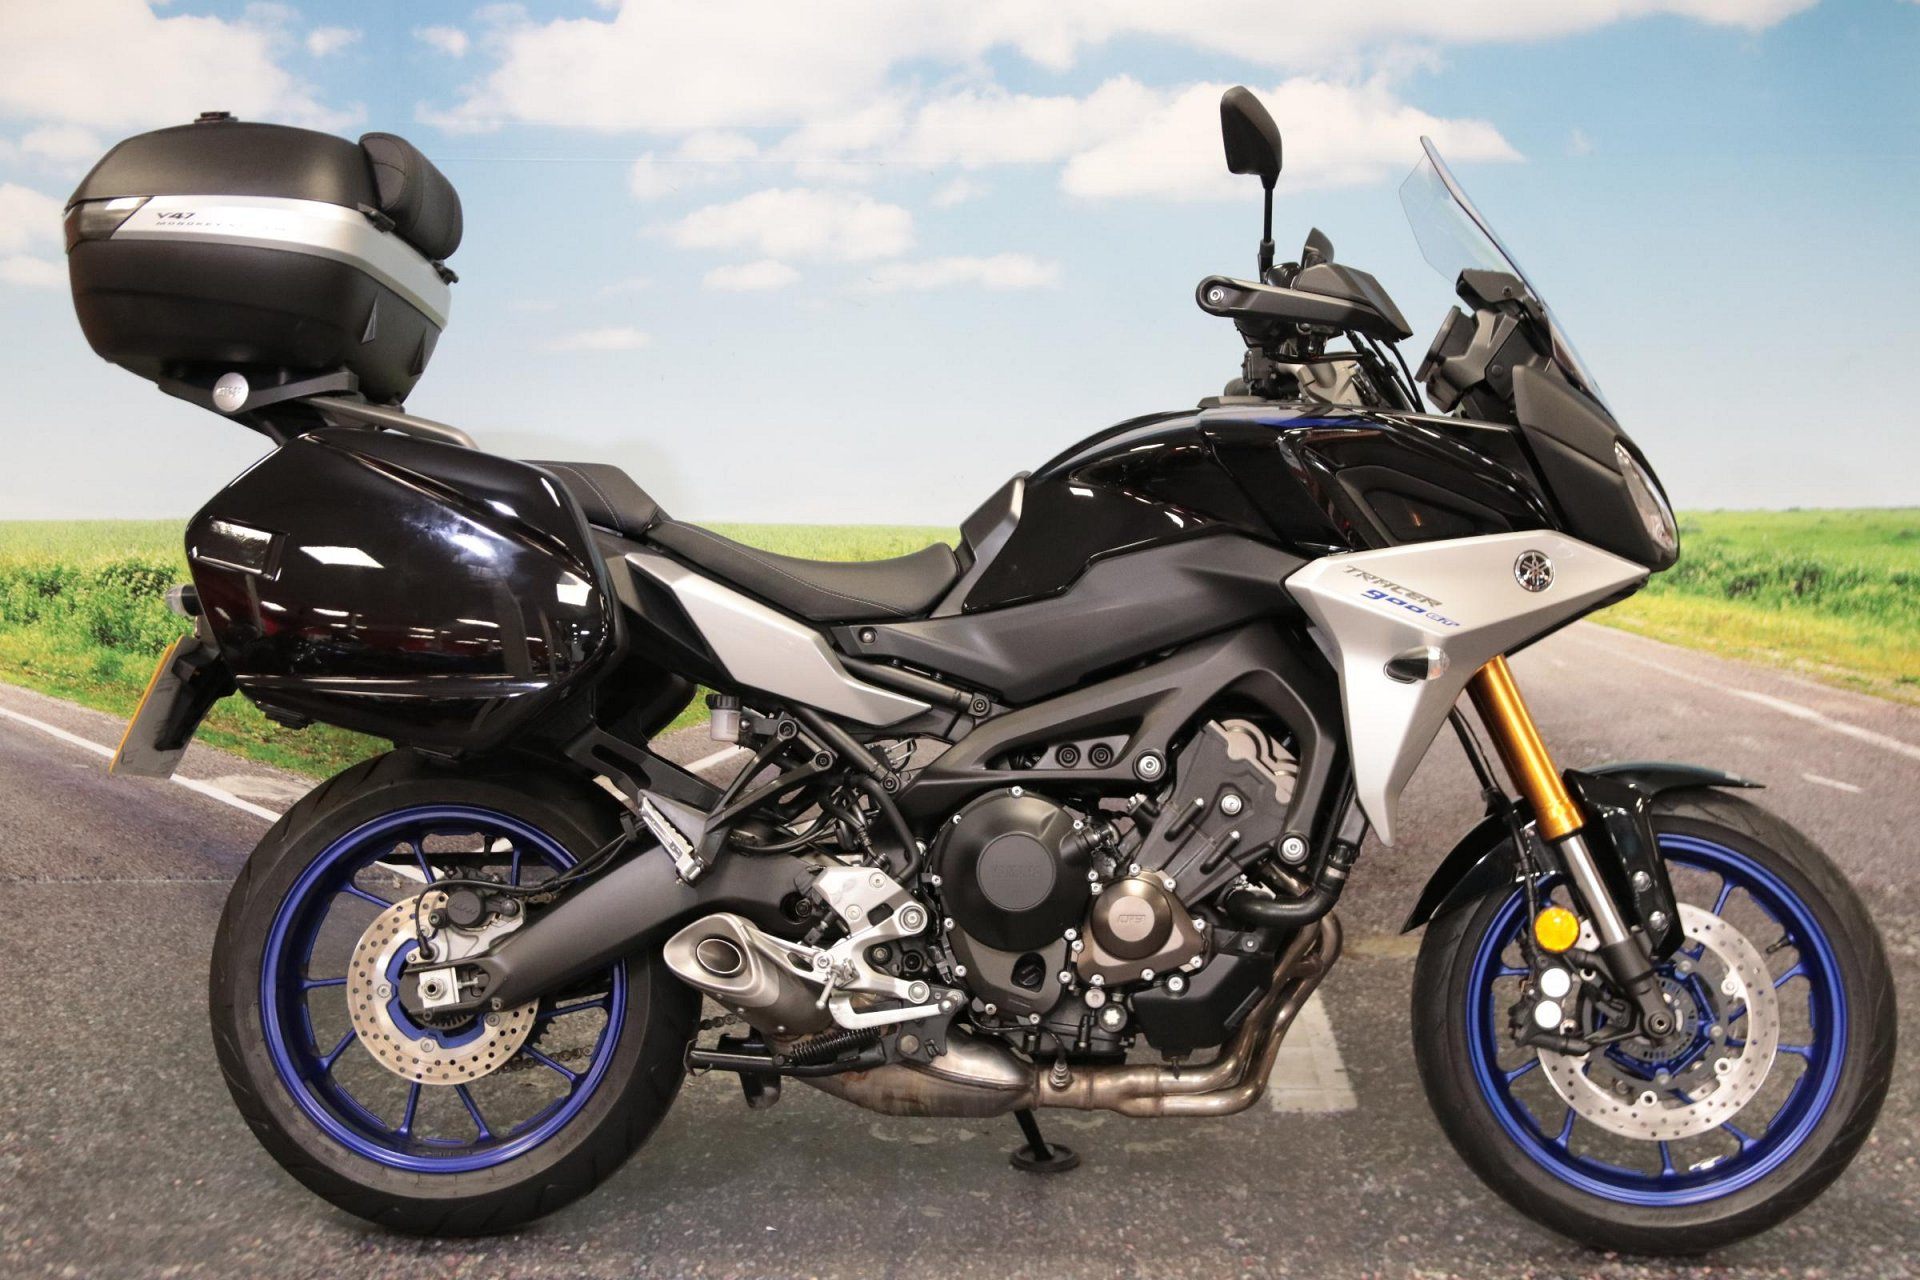 2019 Yamaha Tracer 900 GT for sale in South Wales